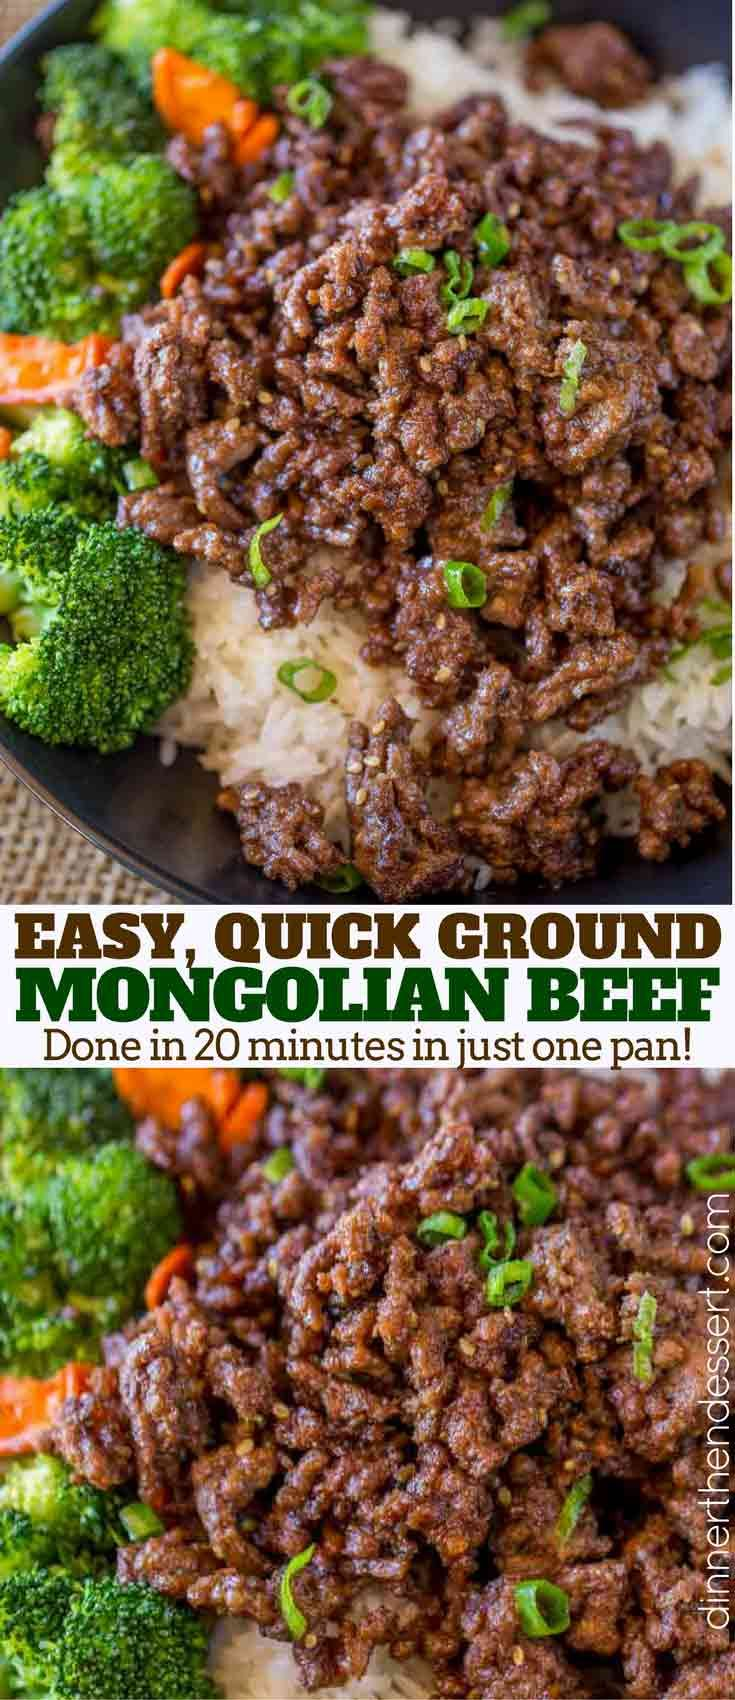 Ground Mongolian Beef with a sweet and spicy sauce that is crispy and tender without having to buy steak and it's done in 20 minutes.